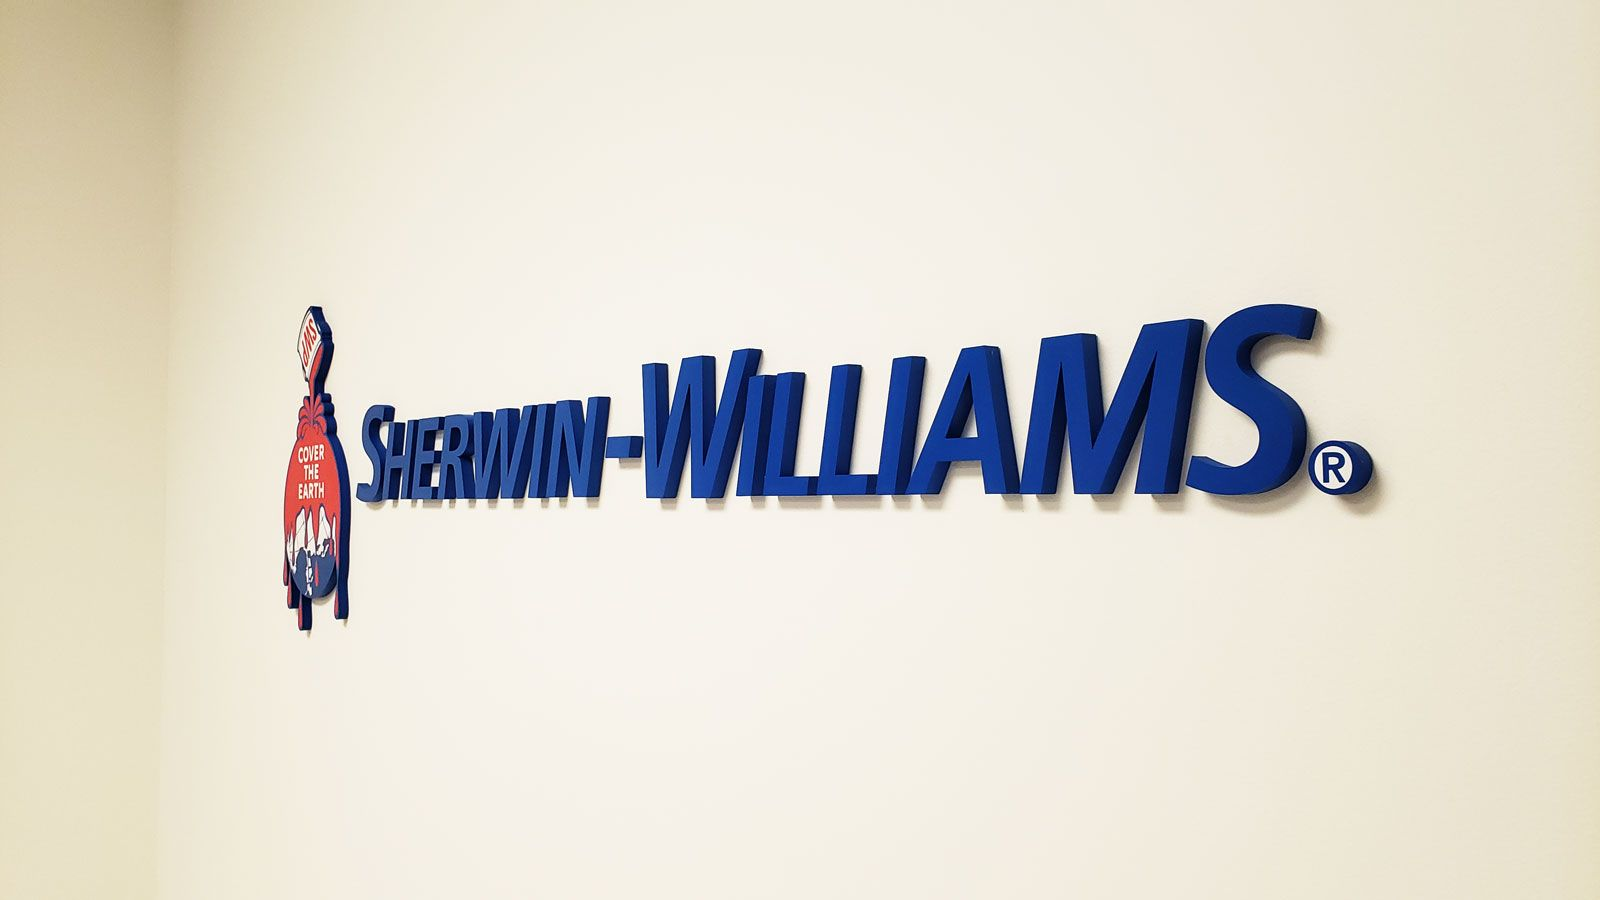 Sherwin-Williams 3d logo sign and painted letters displaying the brand name made of acrylic for office interior branding